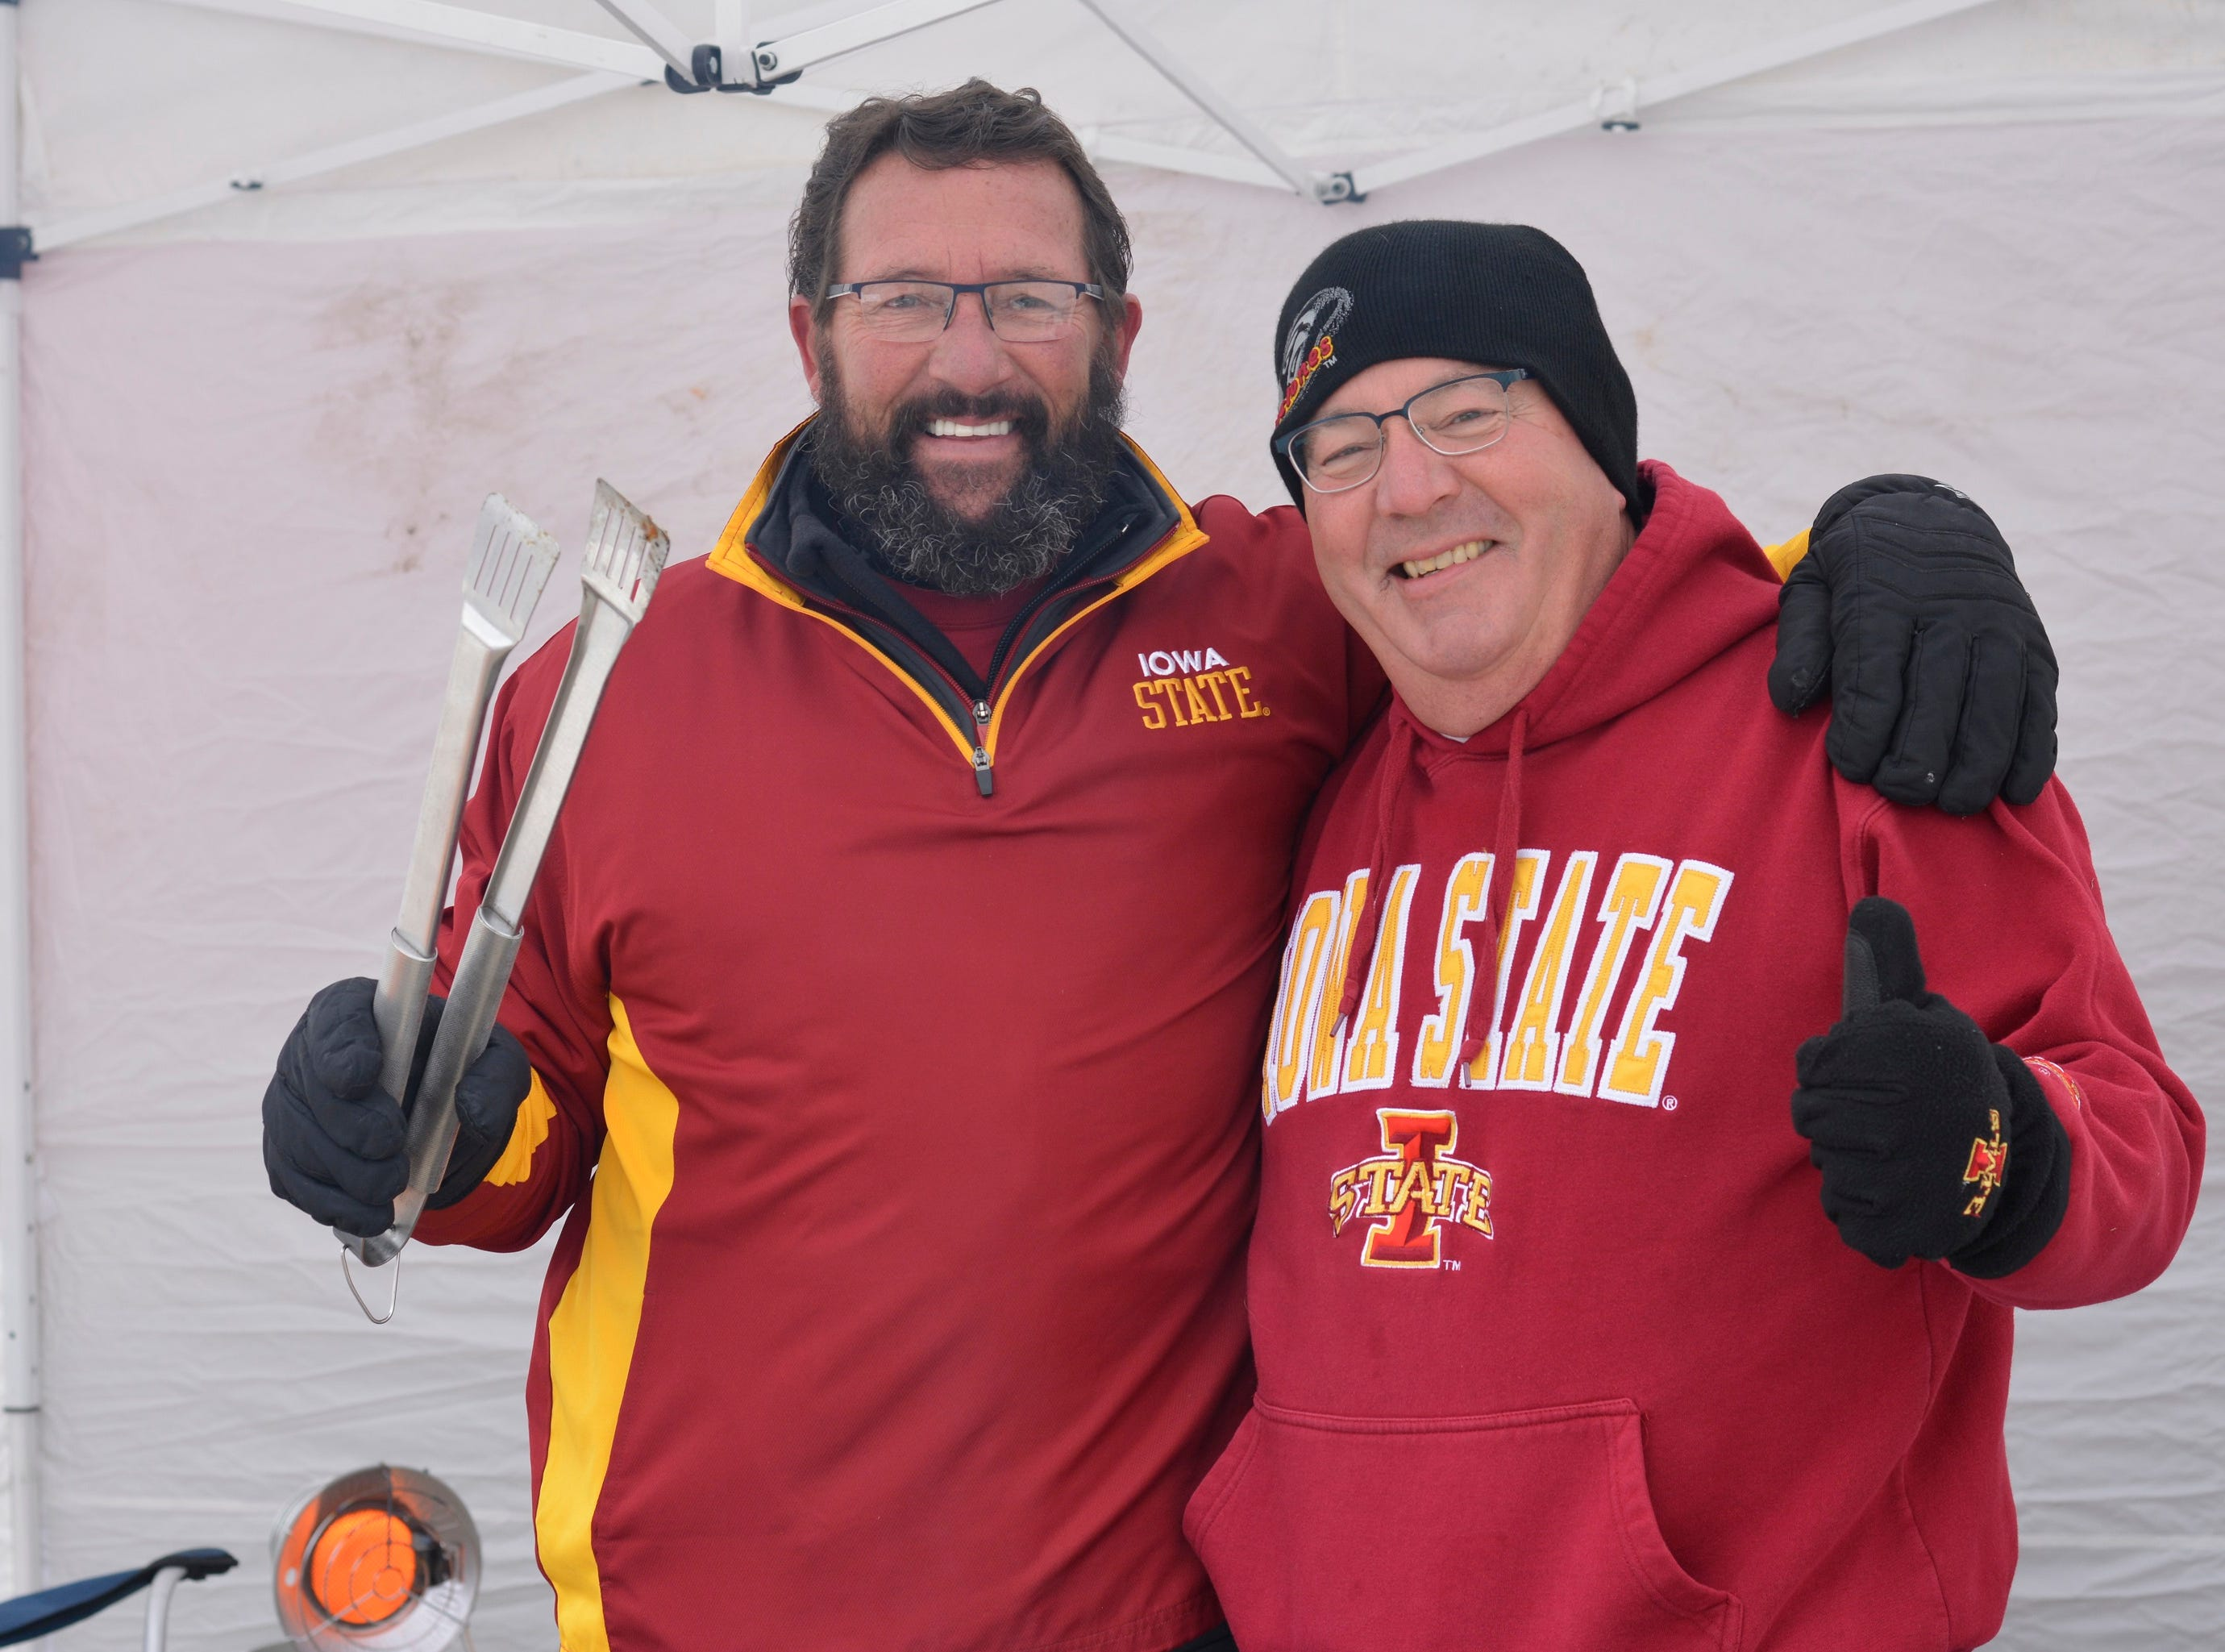 Frank Jennings (left) and Dannie Ackerman before the Iowa State University football game against Baylor in Ames on Nov. 10.